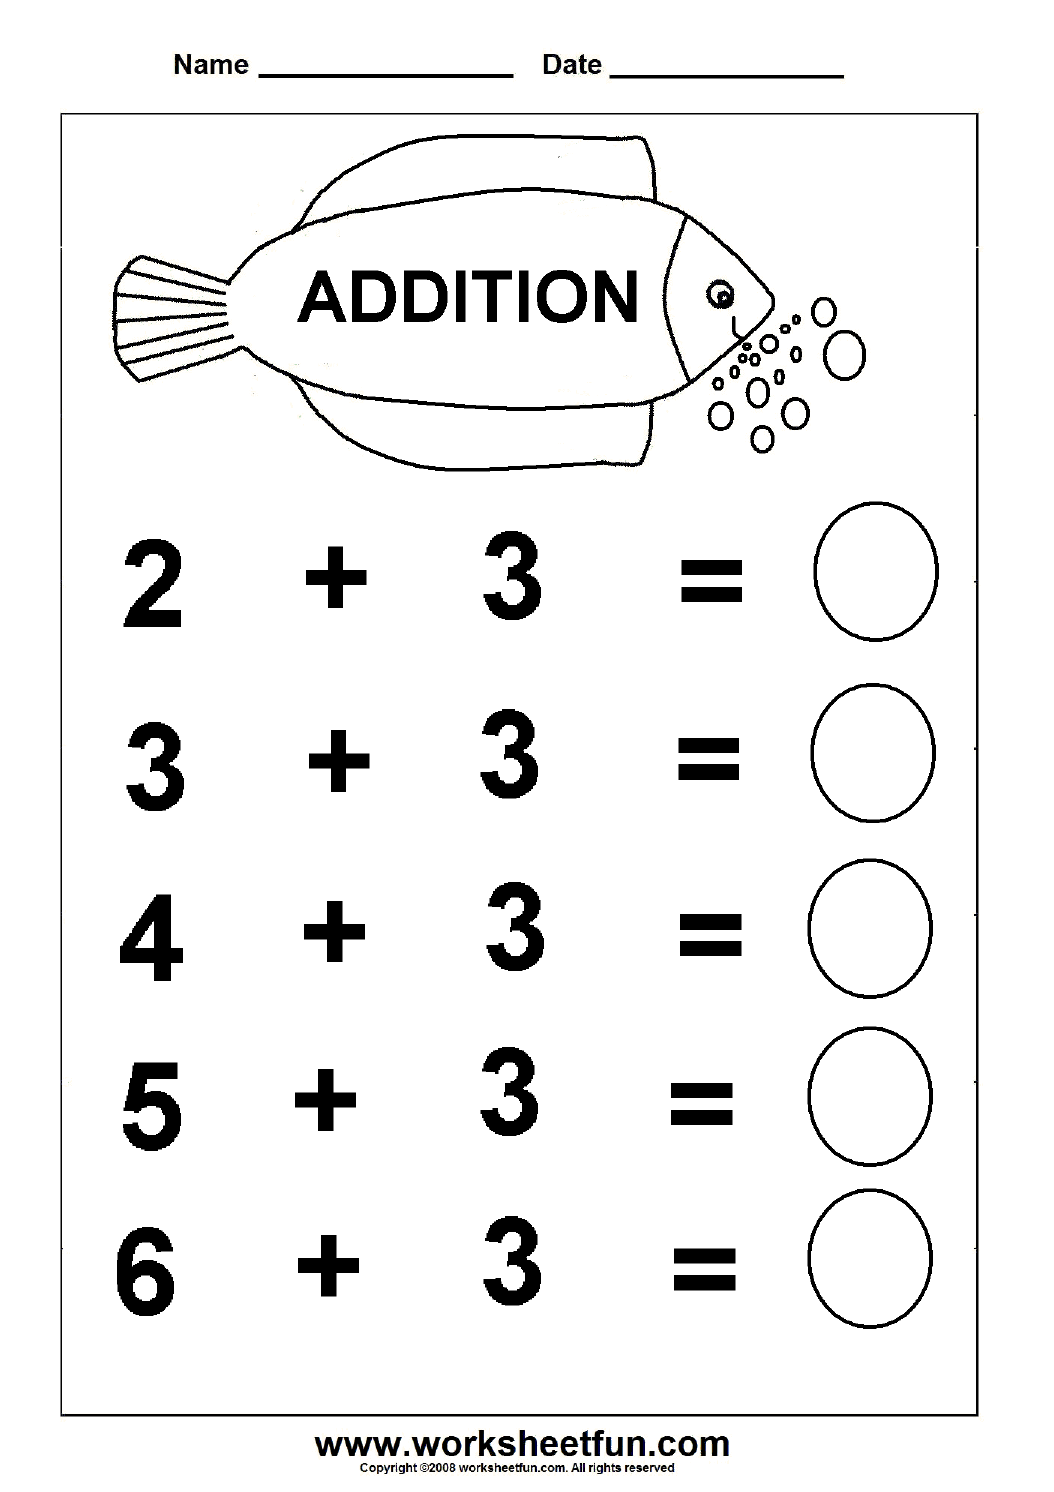 Worksheet Kindergarten Adding beginner addition 6 kindergarten worksheets free subtraction worksheets